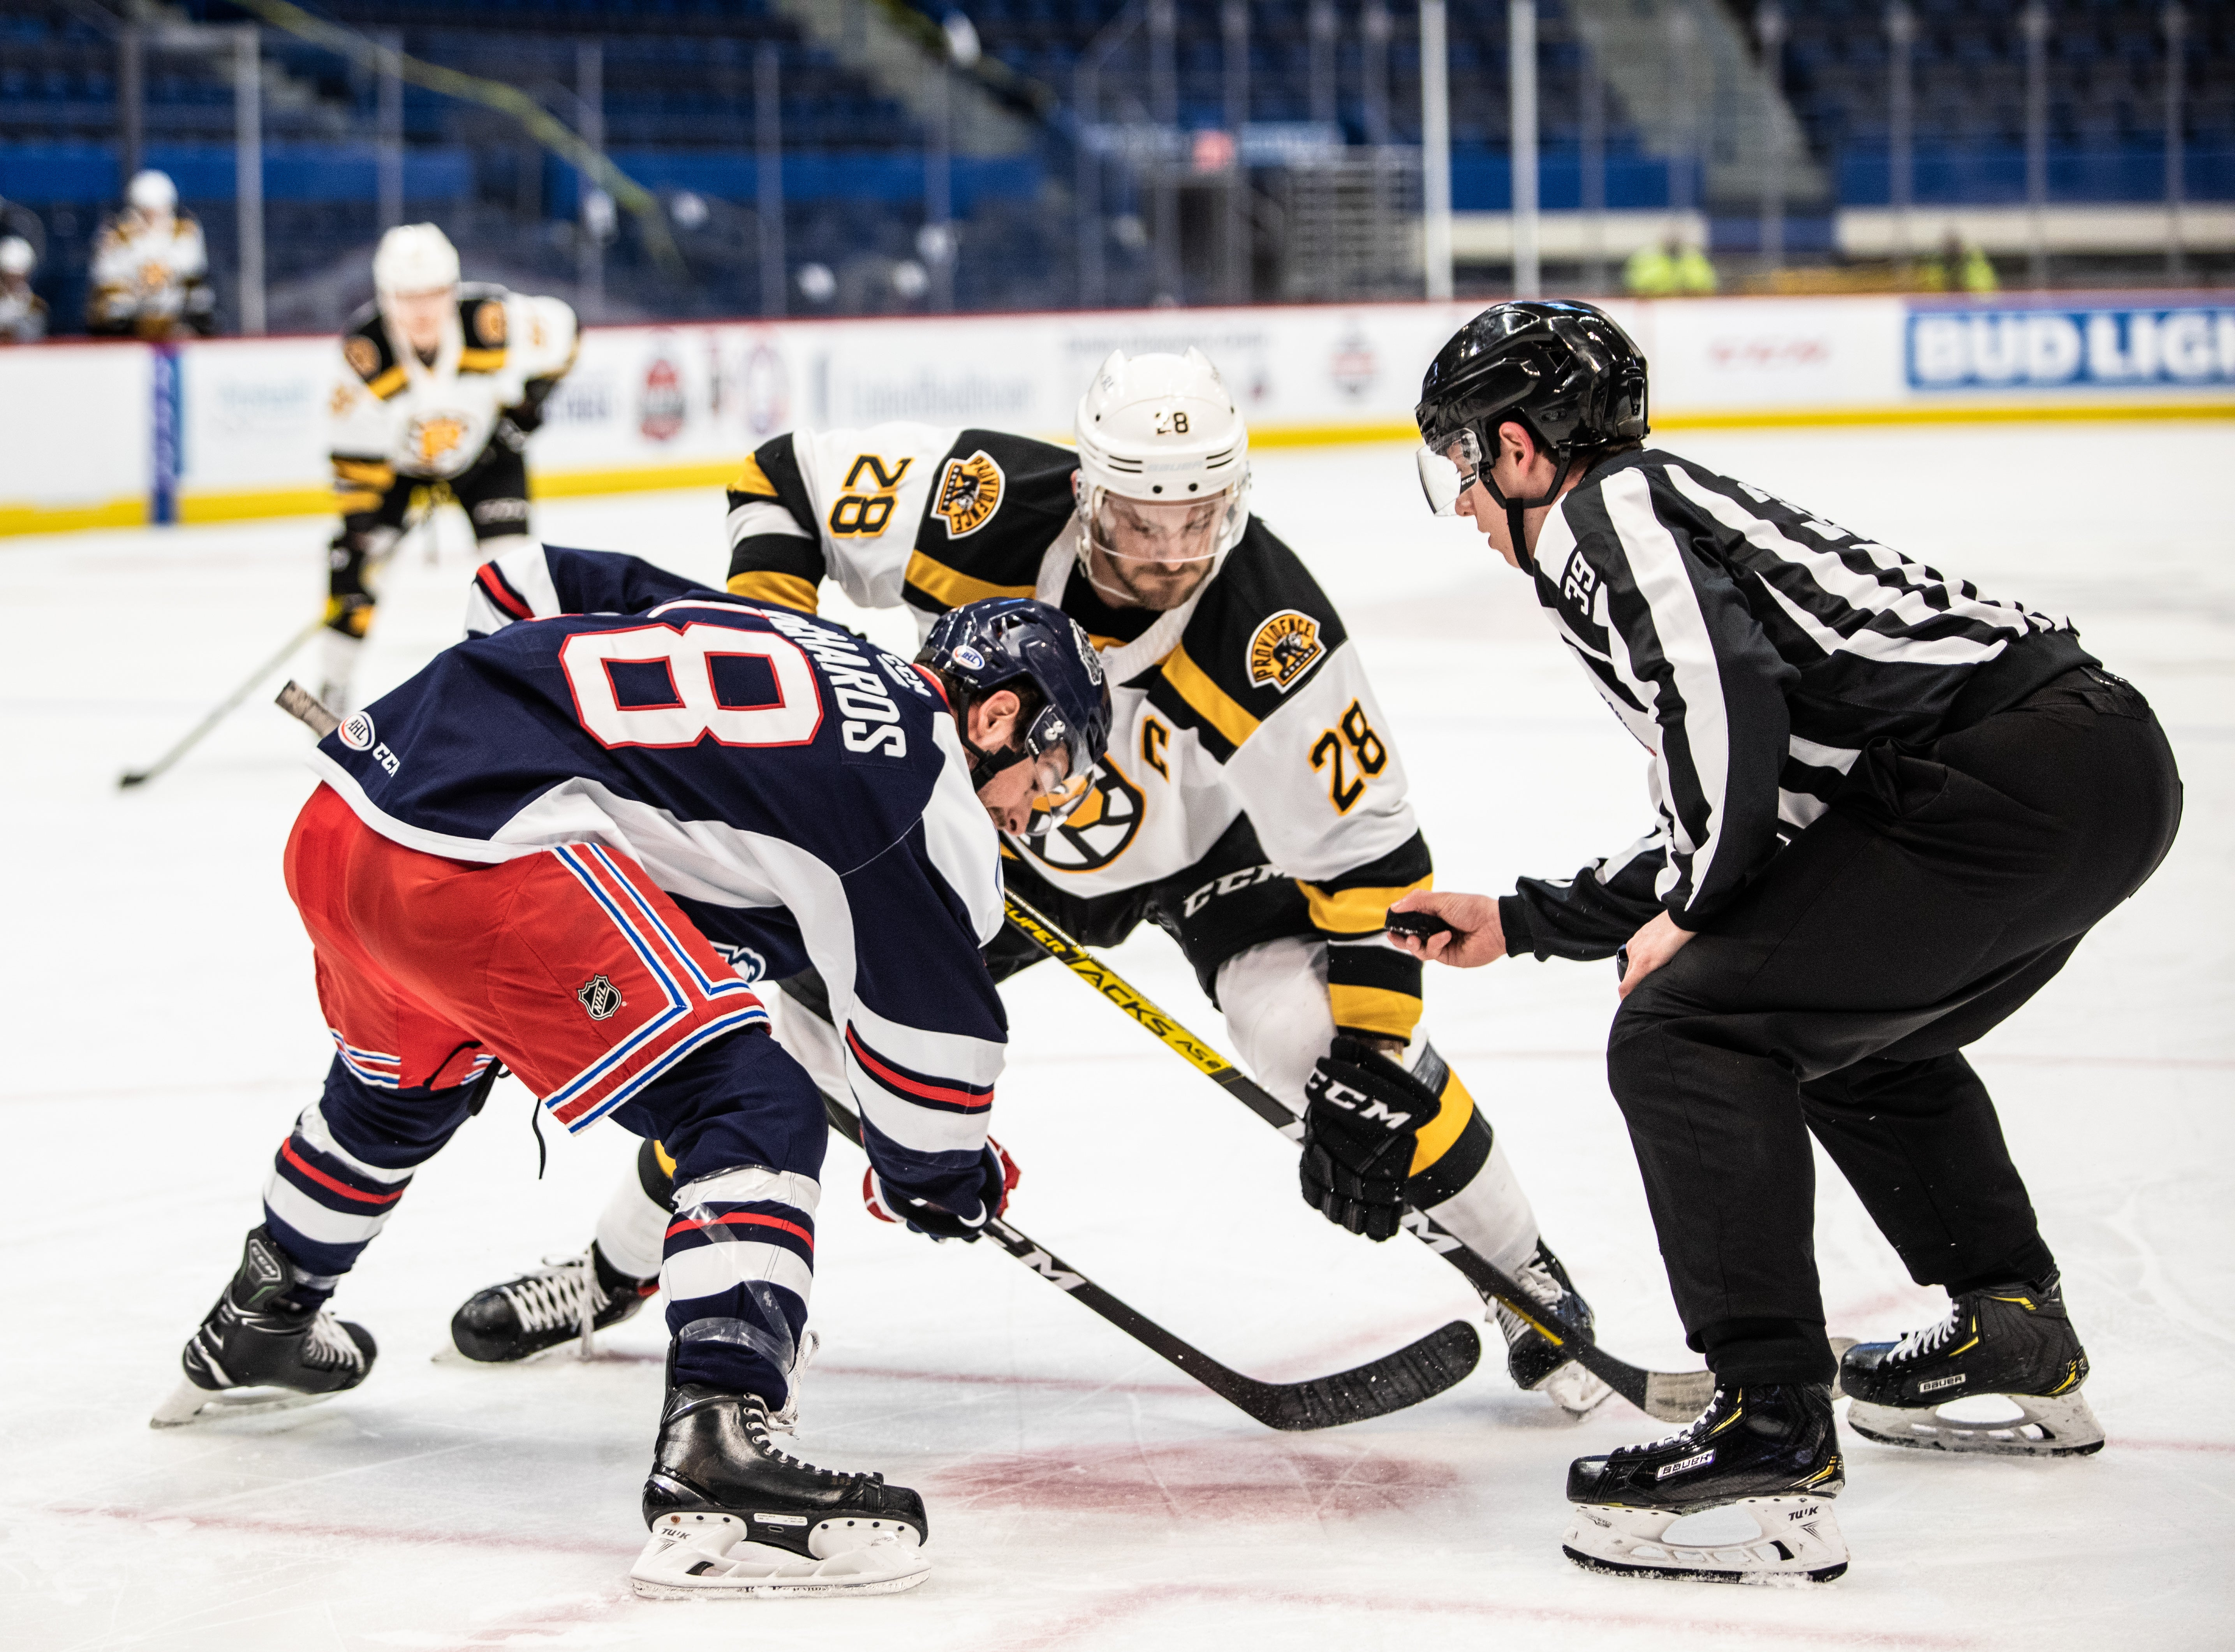 P-BRUINS FALL TO HARTFORD WOLF PACK, 6-1